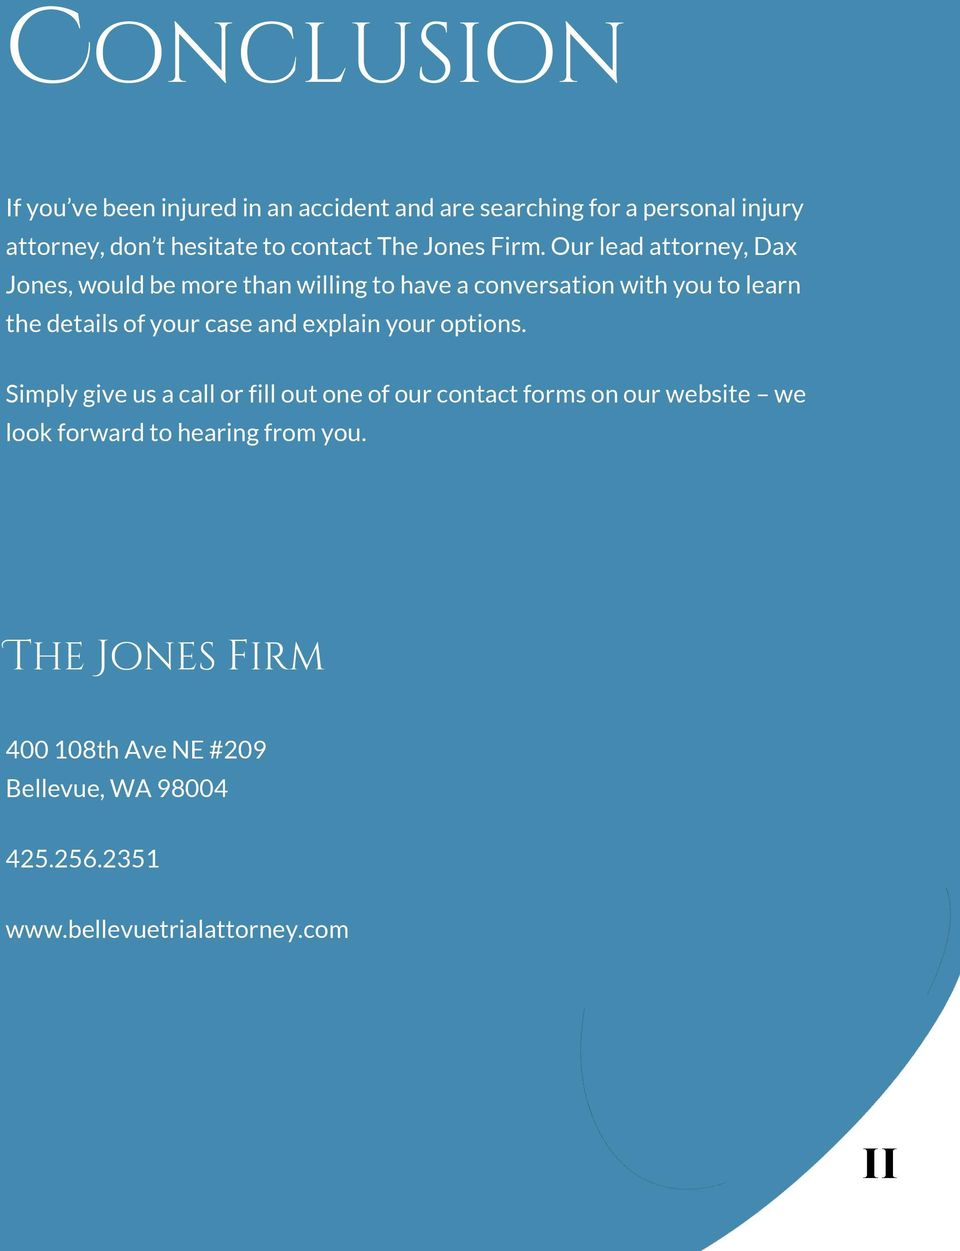 Our lead attorney, Dax Jones, would be more than willing to have a conversation with you to learn the details of your case